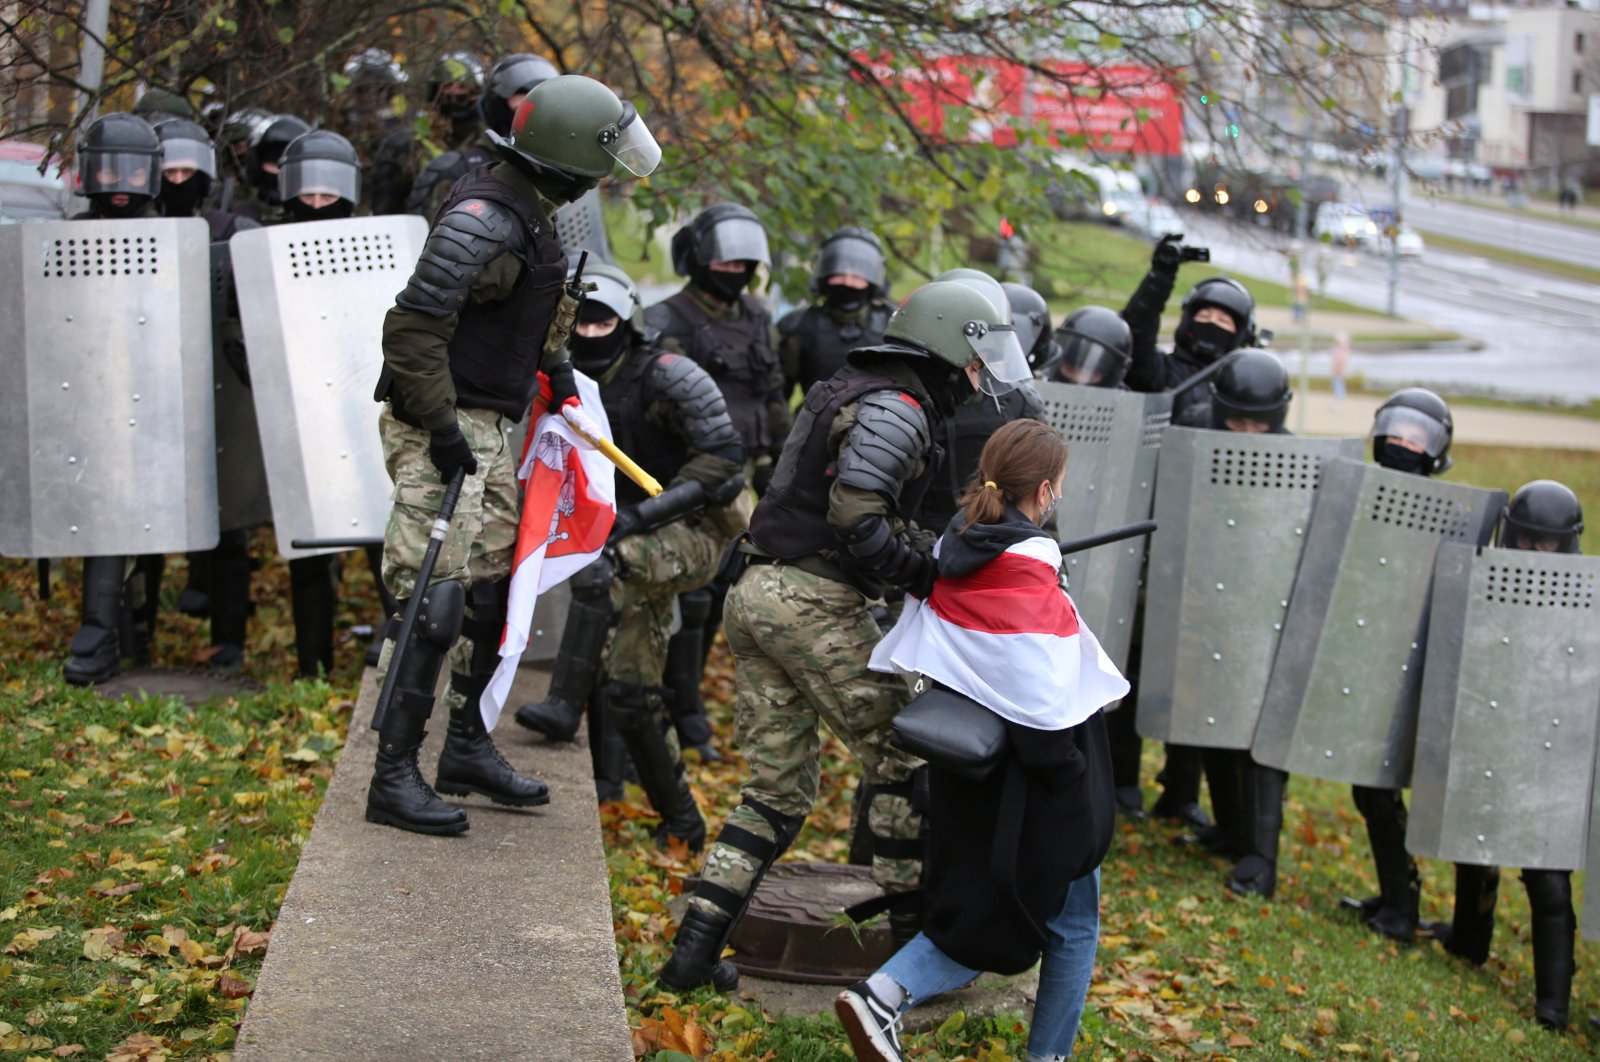 A woman wearing a historical white-red-white flag of Belarus is taken away by a law enforcement officer, Minsk, Nov. 8, 2020. (REUTERS Photo)